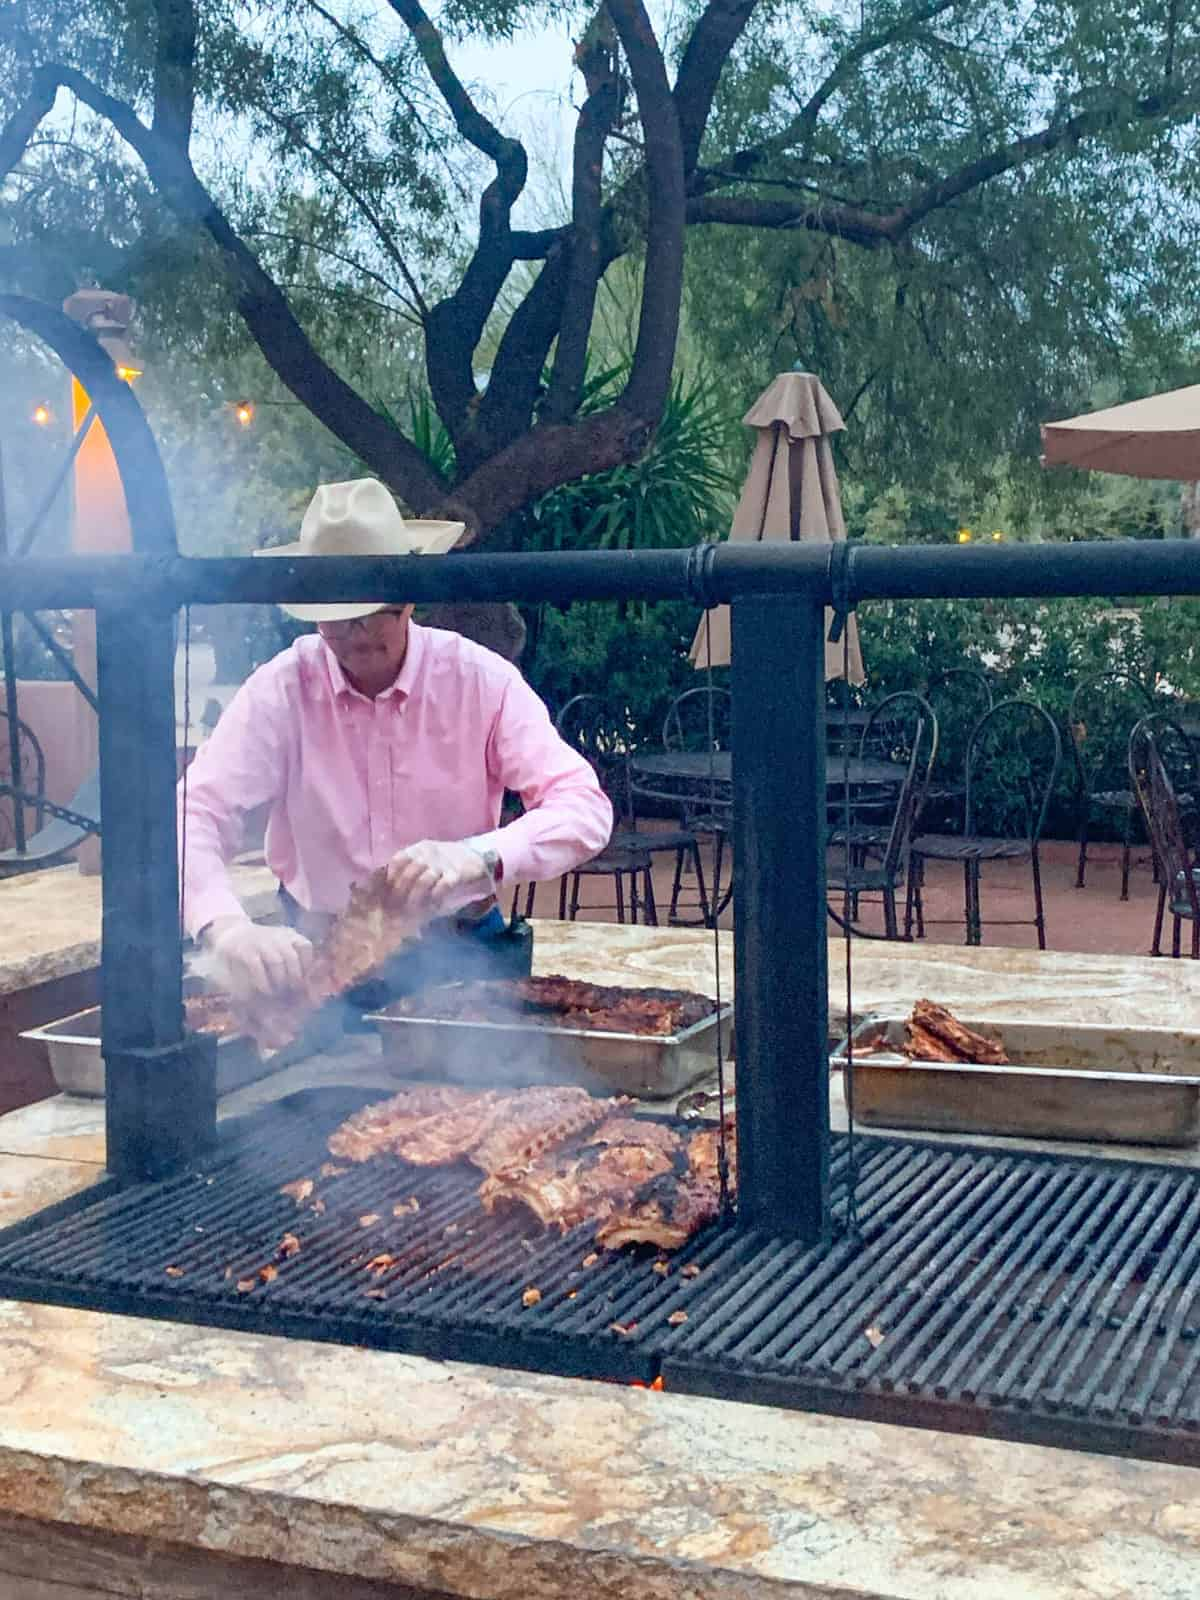 A man cooking on a grill